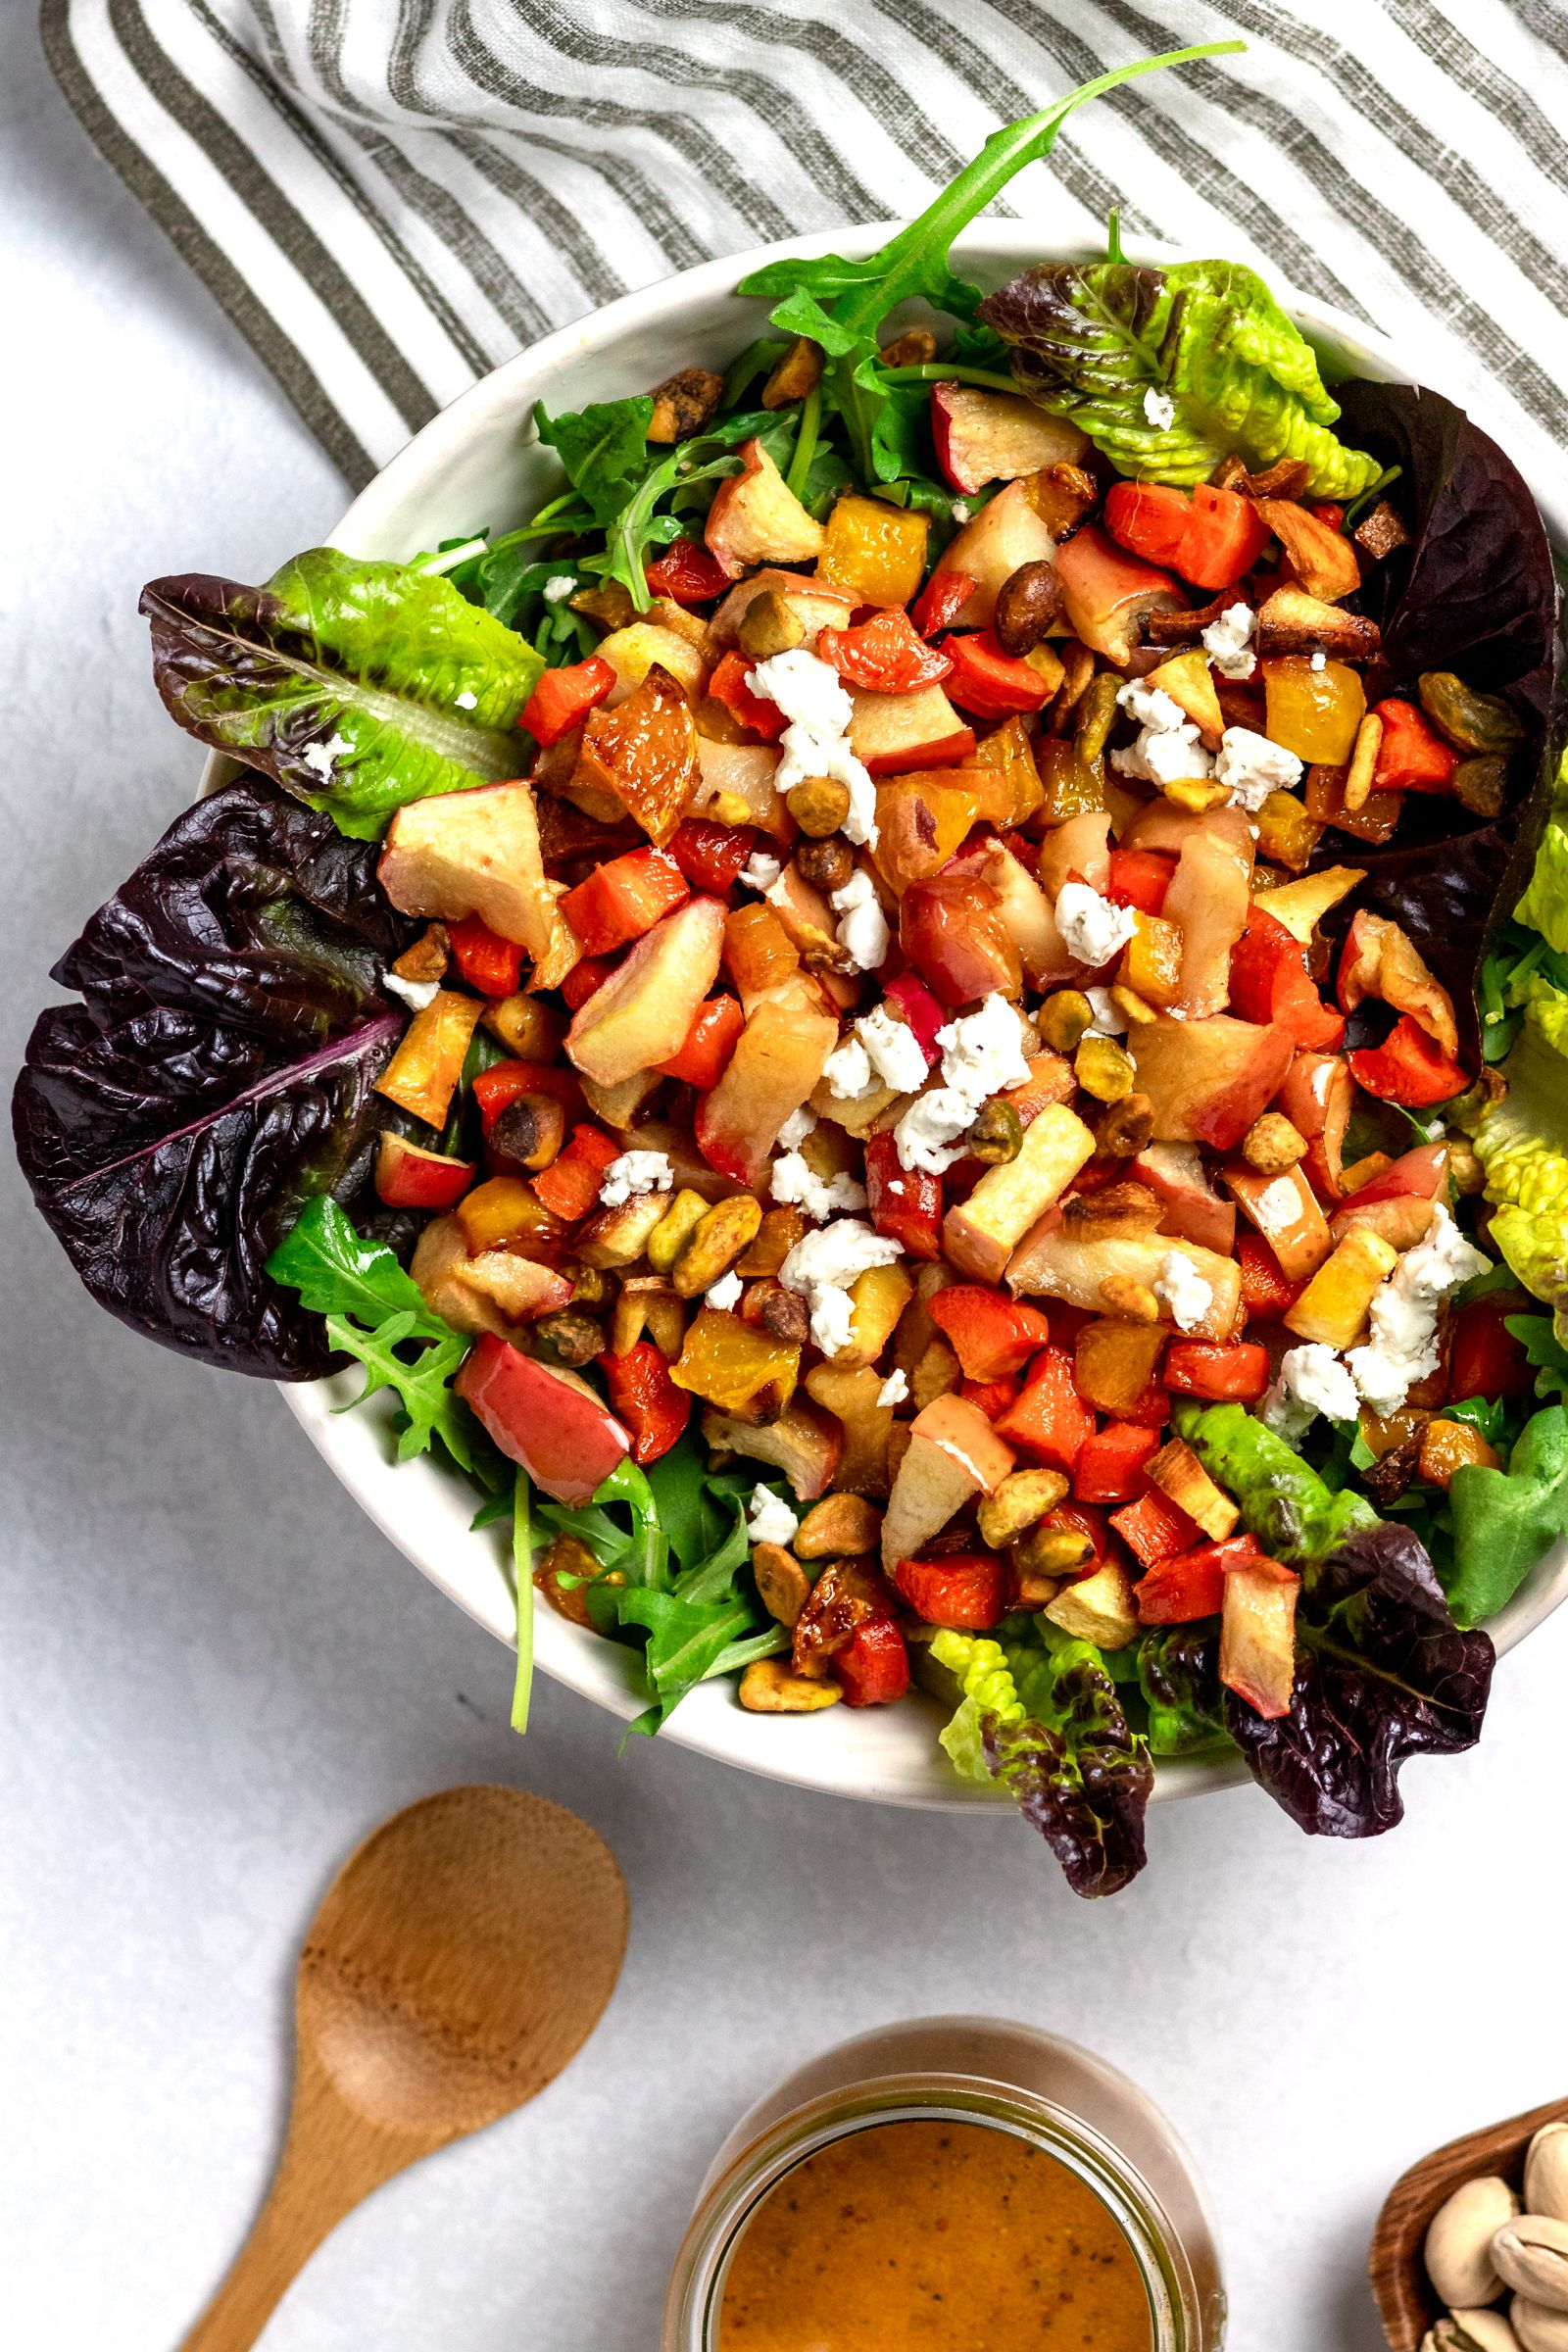 Roasted Root Vegetable Salad with Turmeric Honey Dressing